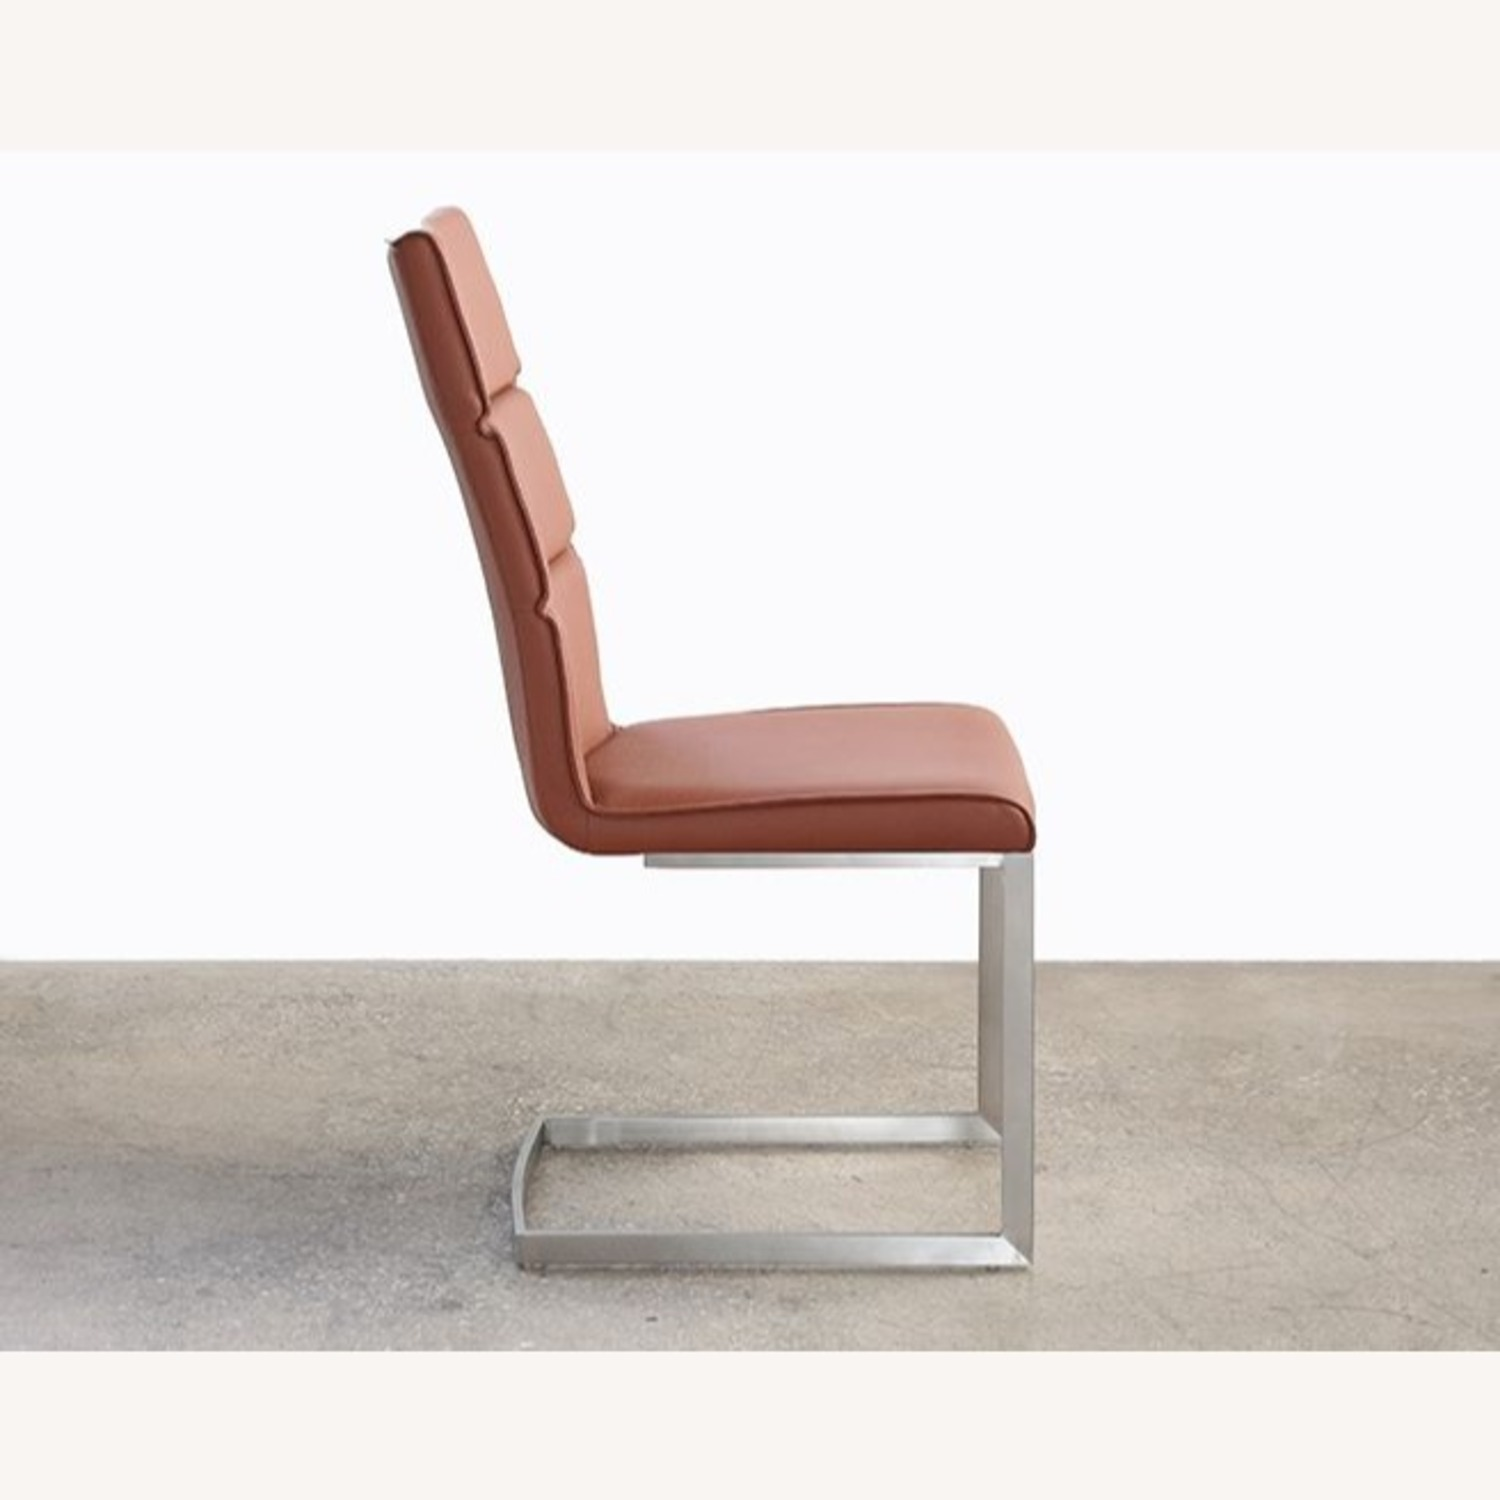 Tan Leatherette Dining Chair Stainless Steel Frame - image-1